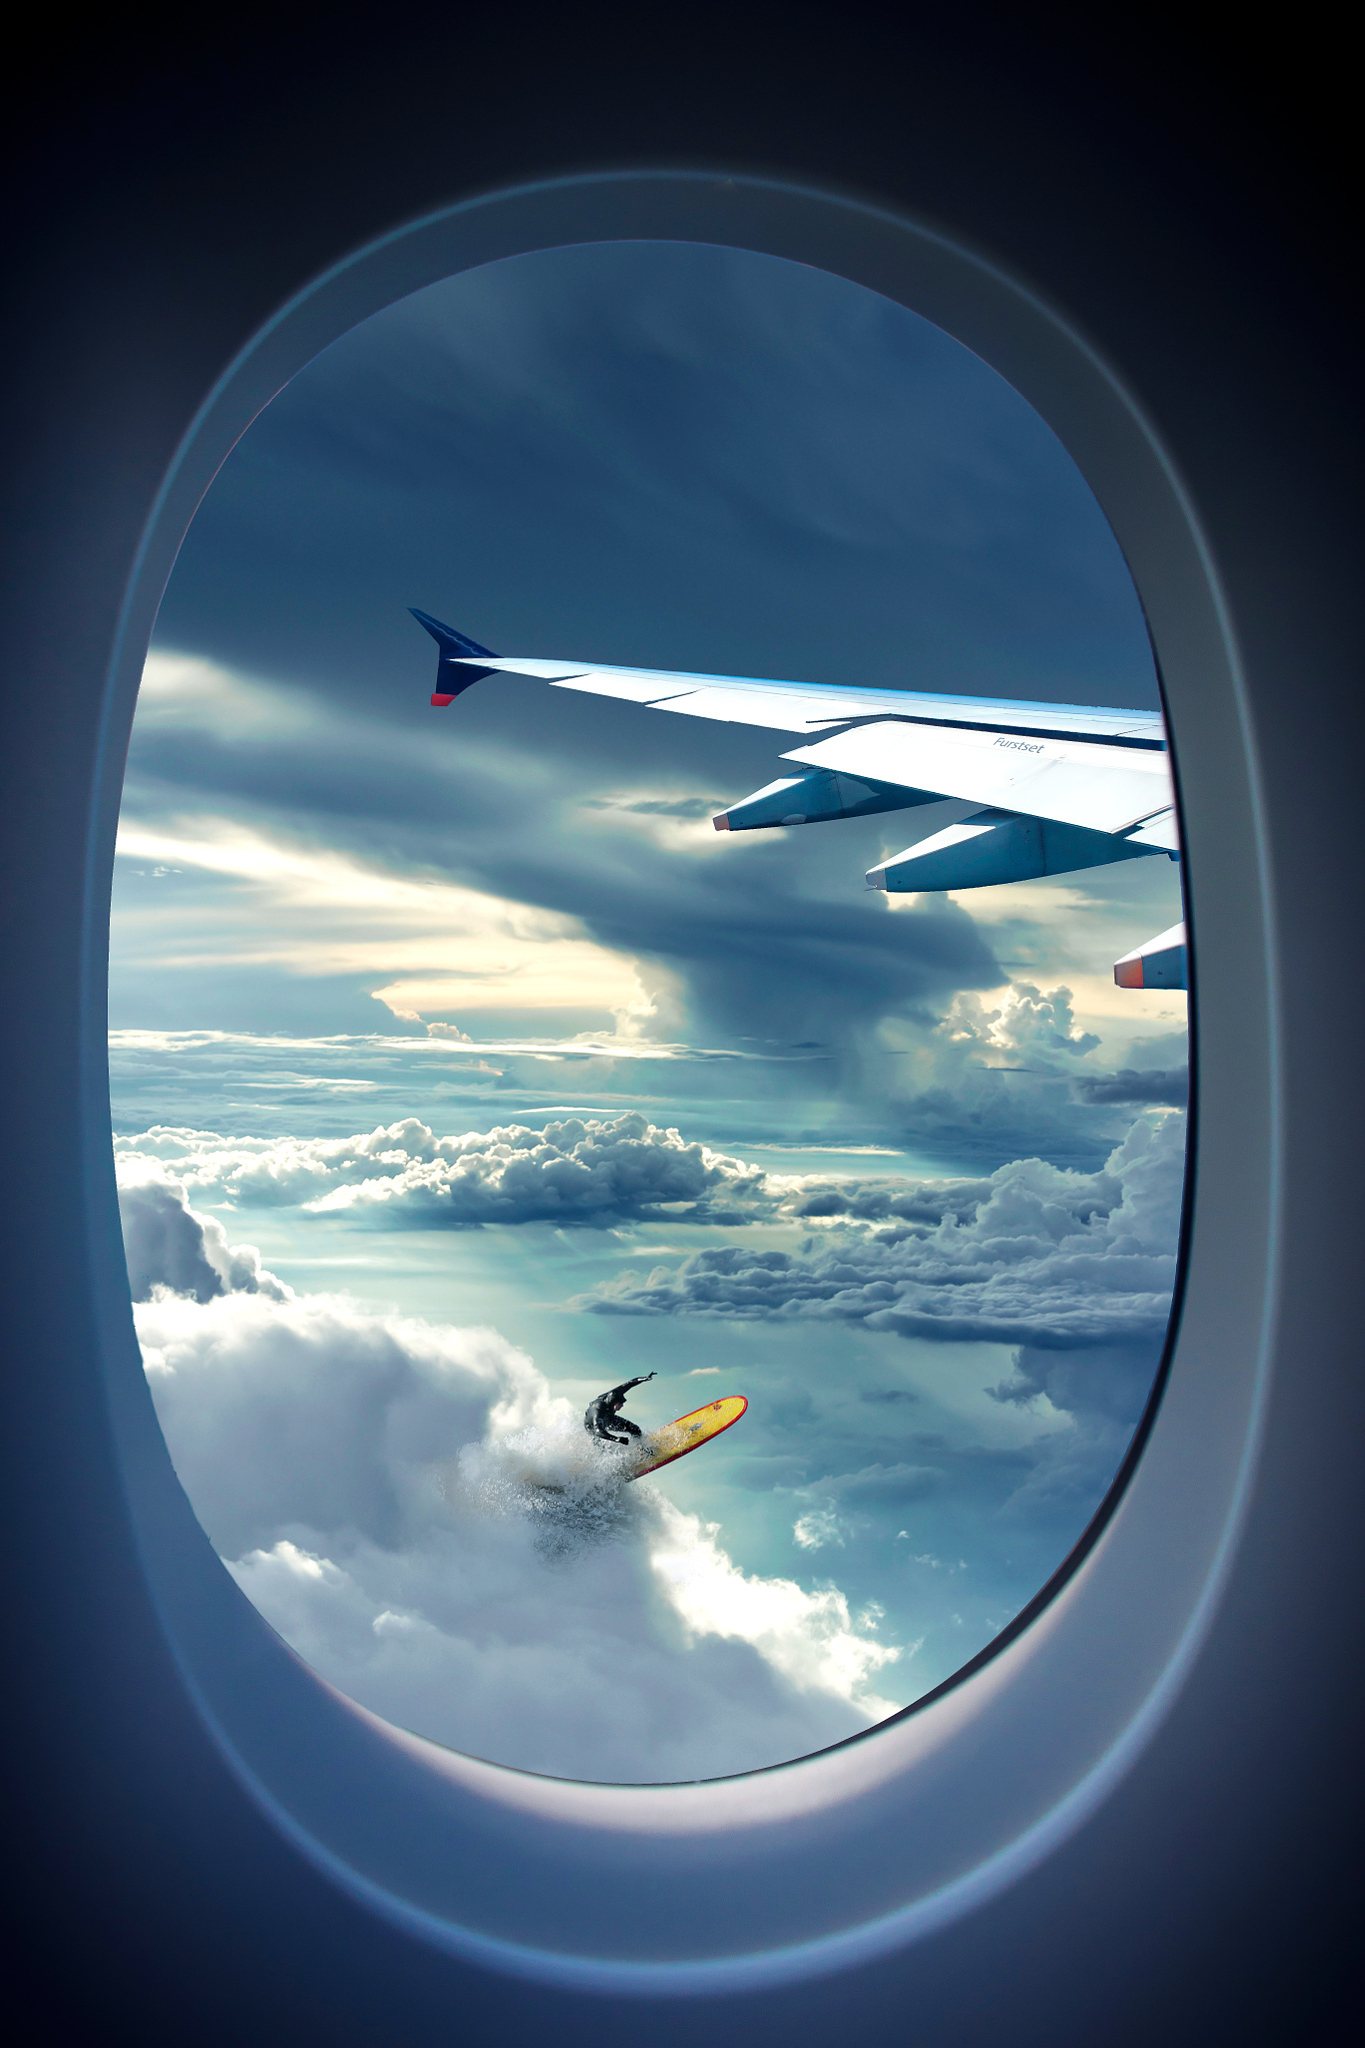 airplane window travel sky aircraft flight landscape light sea clouds